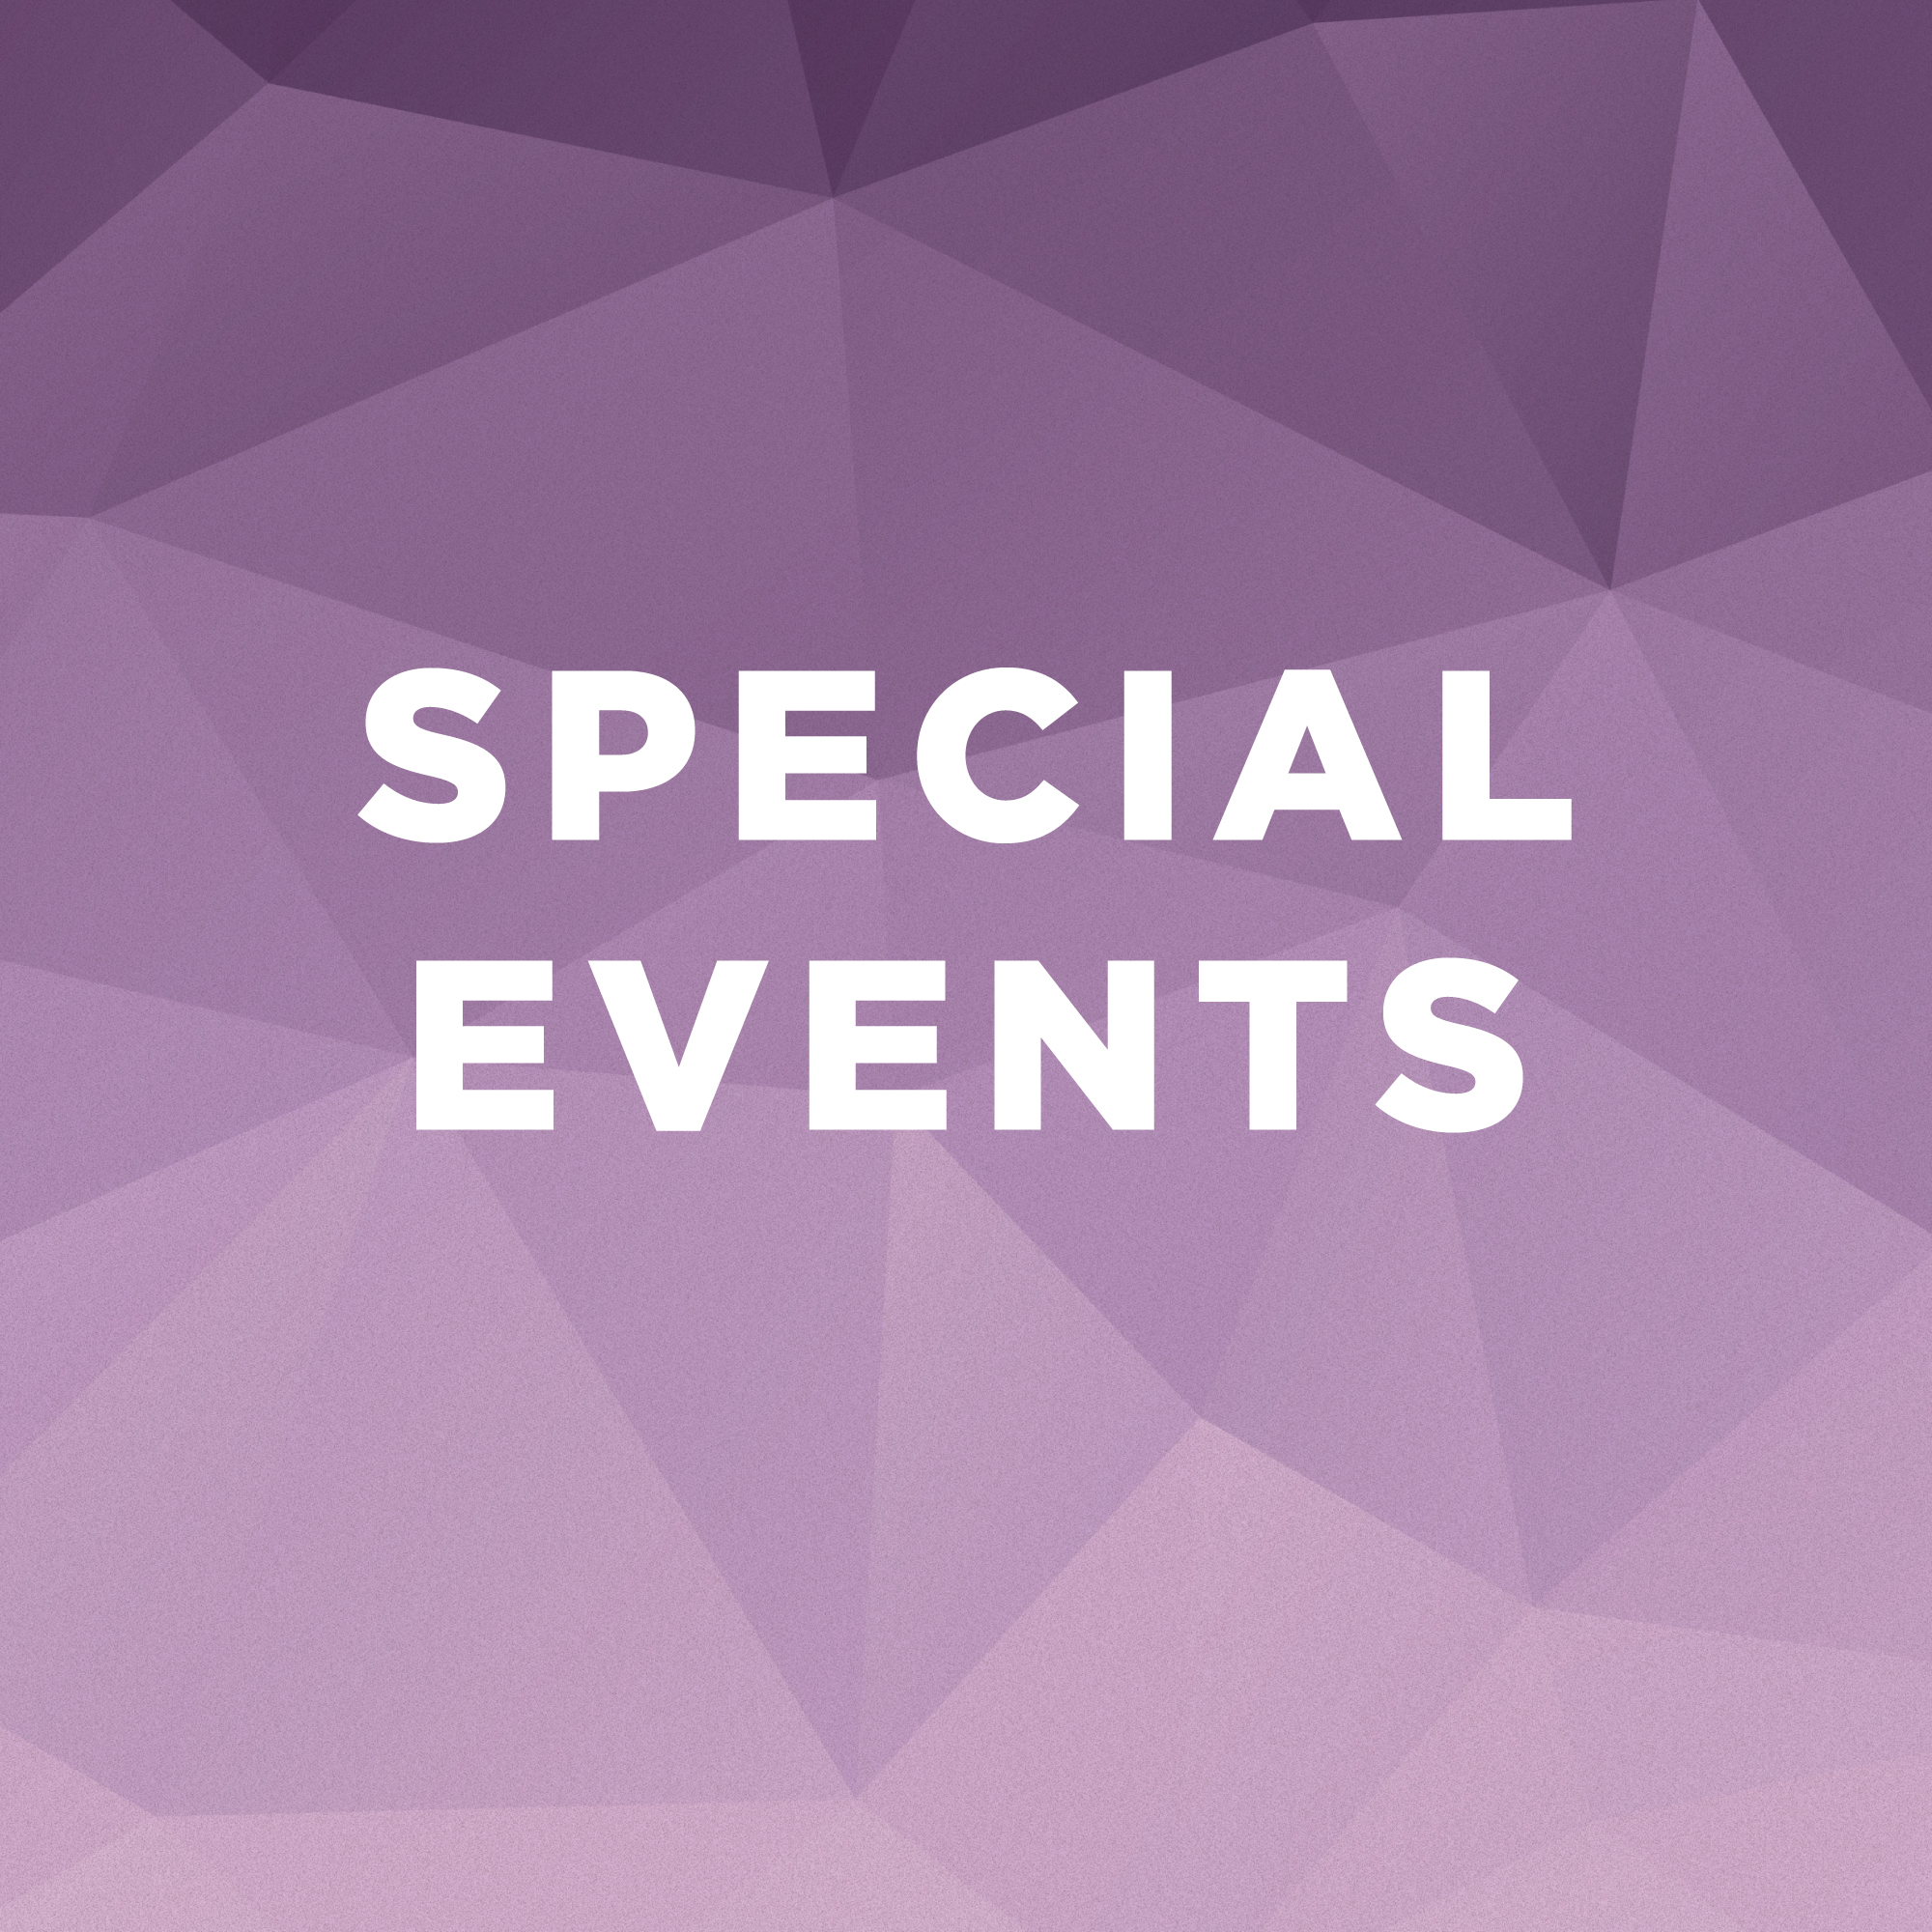 Special-Events.jpg